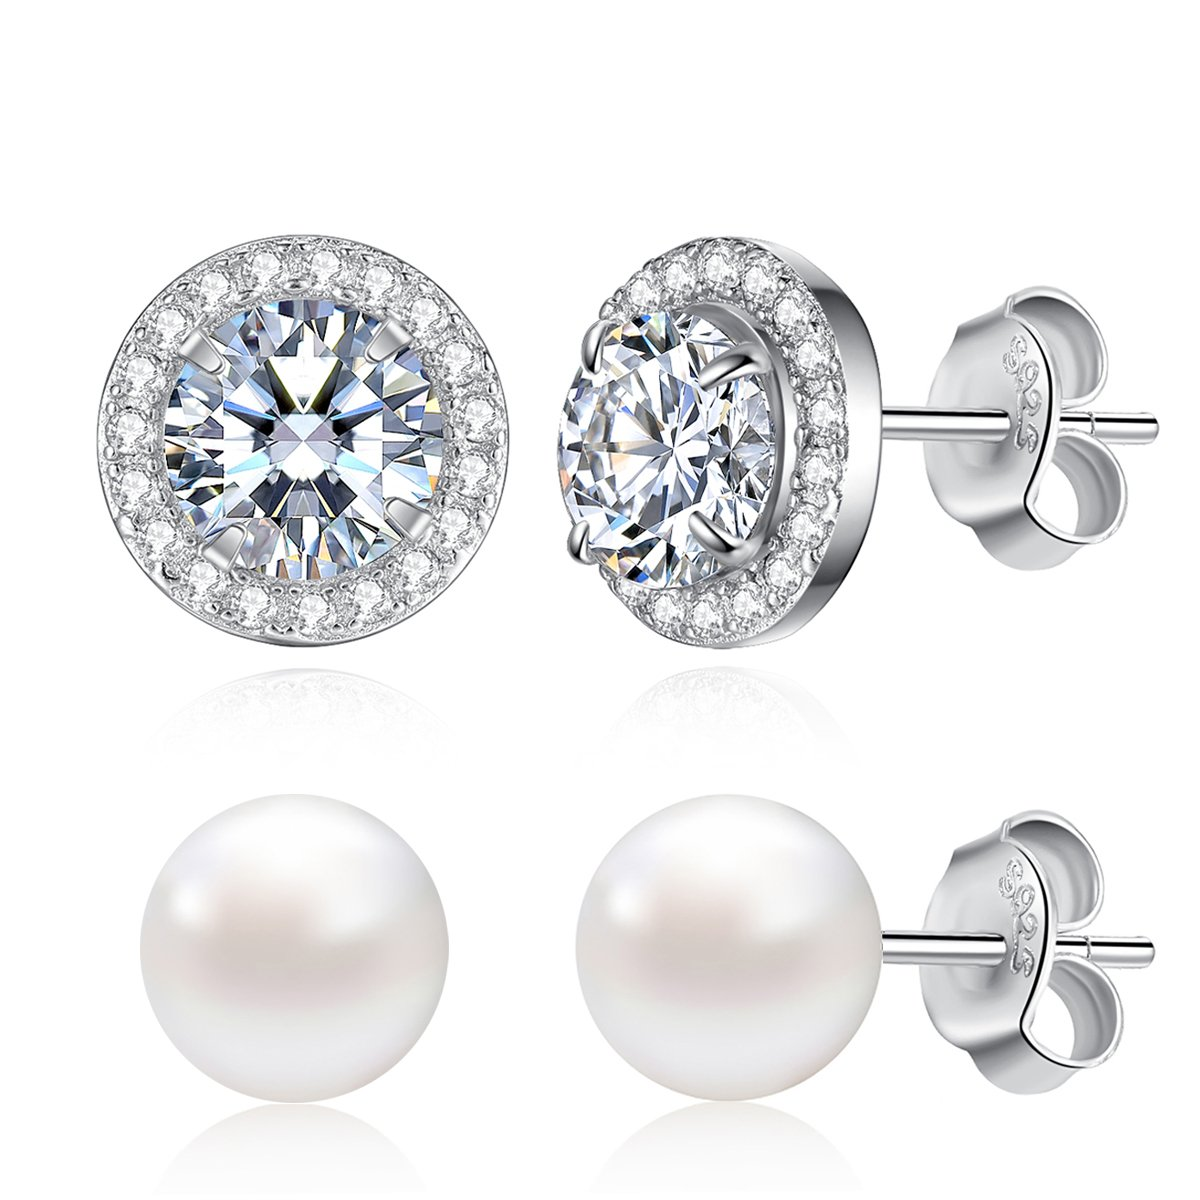 Stud Earrings Set Sterling Silver Cubic Zirconia Halo Studs and Freshwater Cultured Pearl Earrings for Women Girls, 2 Pairs